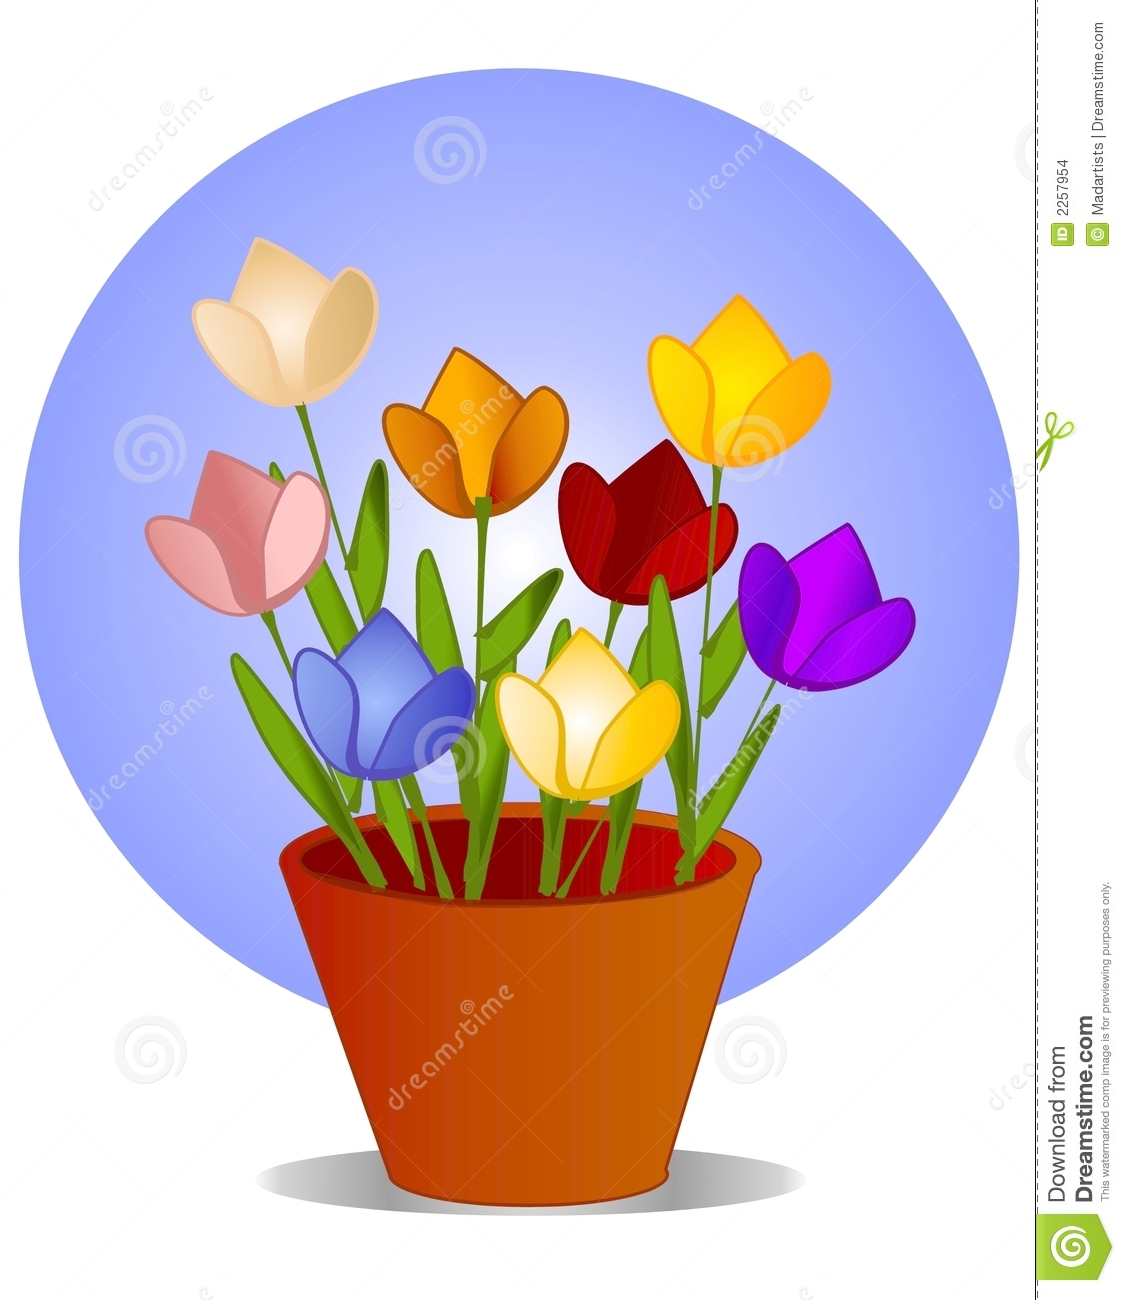 tulips in flower pot clip art stock illustration illustration of rh dreamstime com